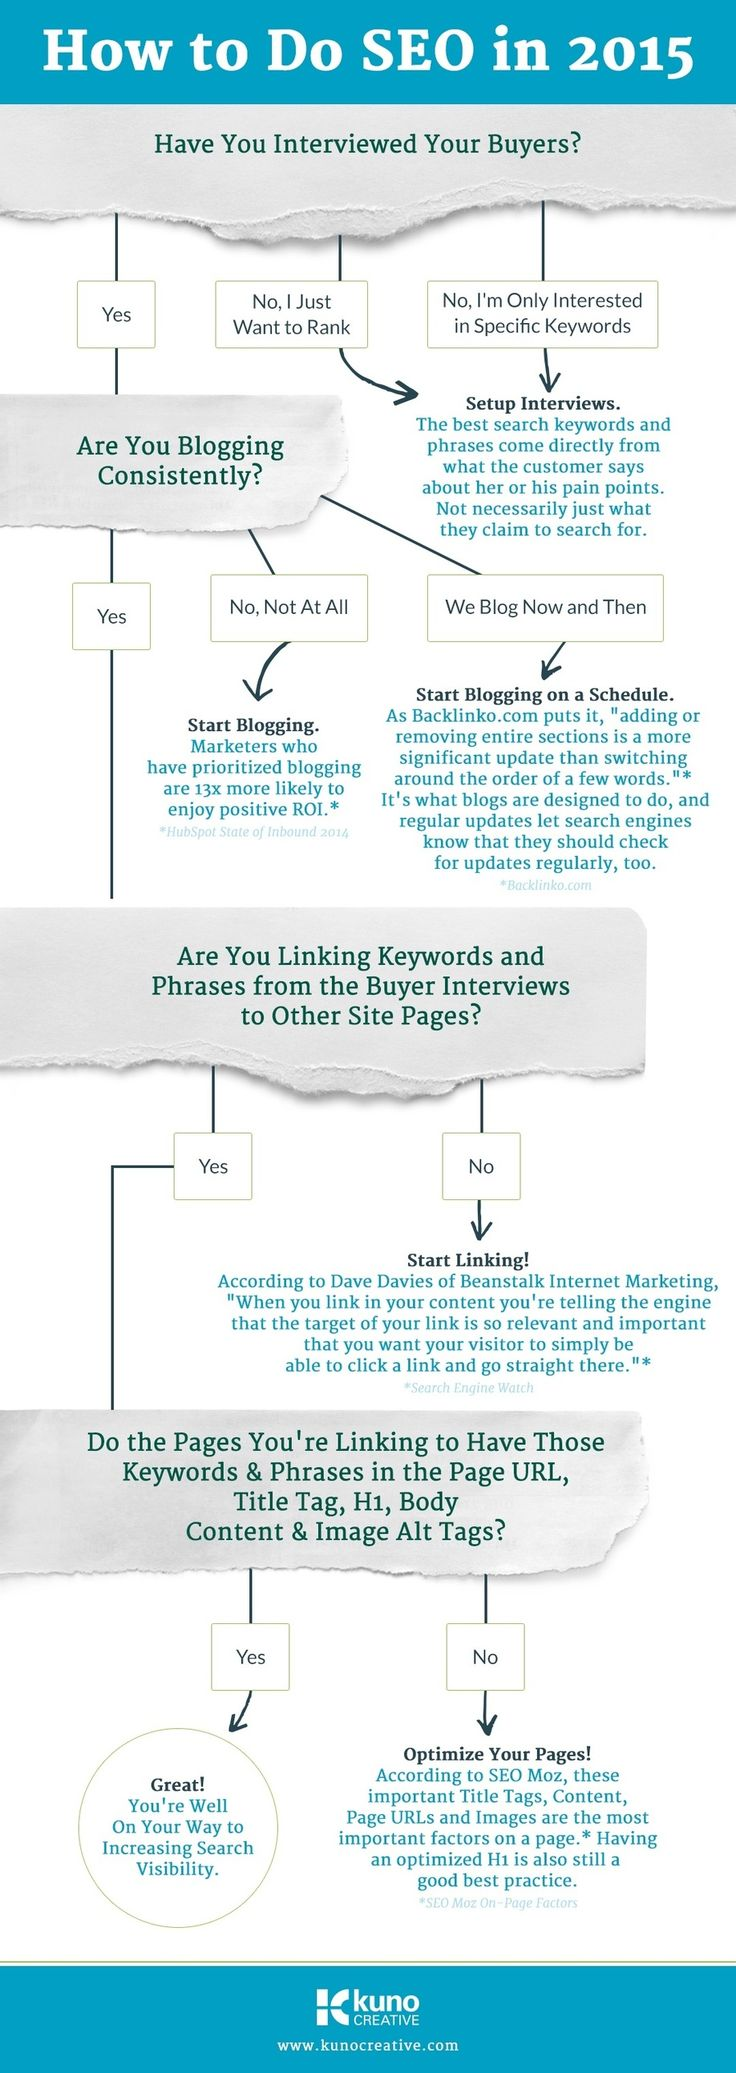 A simple SEO guide in 2015 (Infographic)